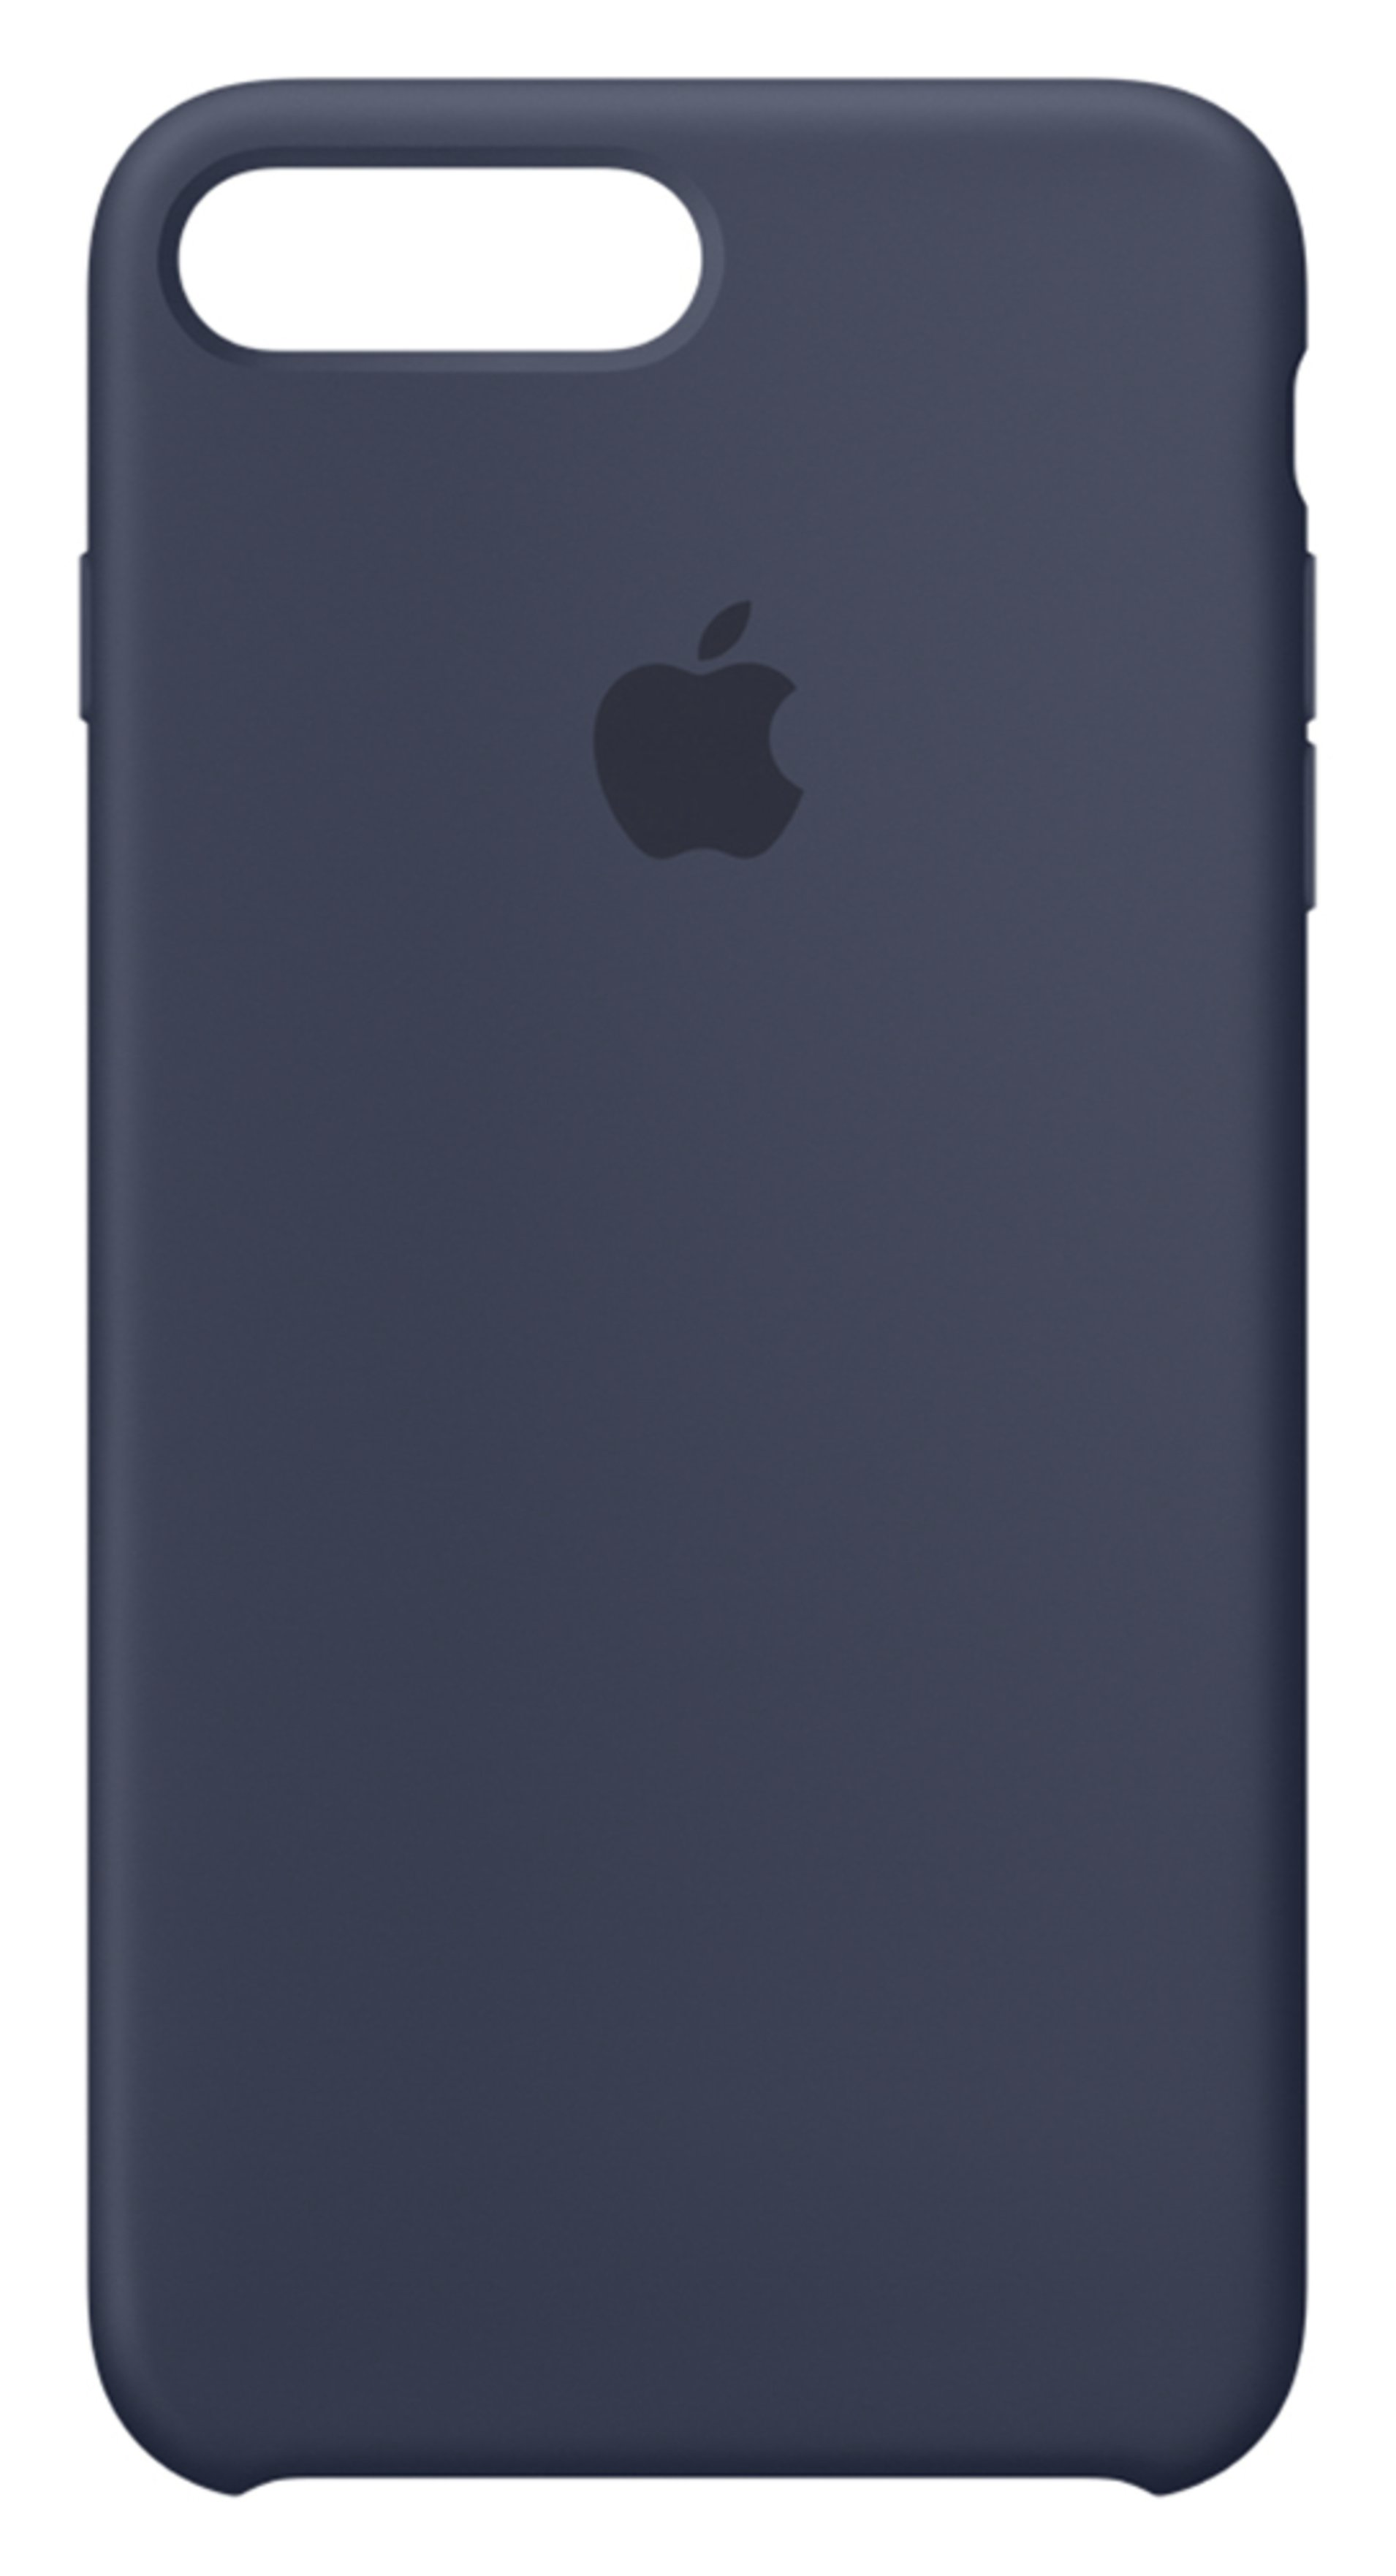 Apple iPhone 8 7 Silicone Case Midnight Blue cheapest retail price